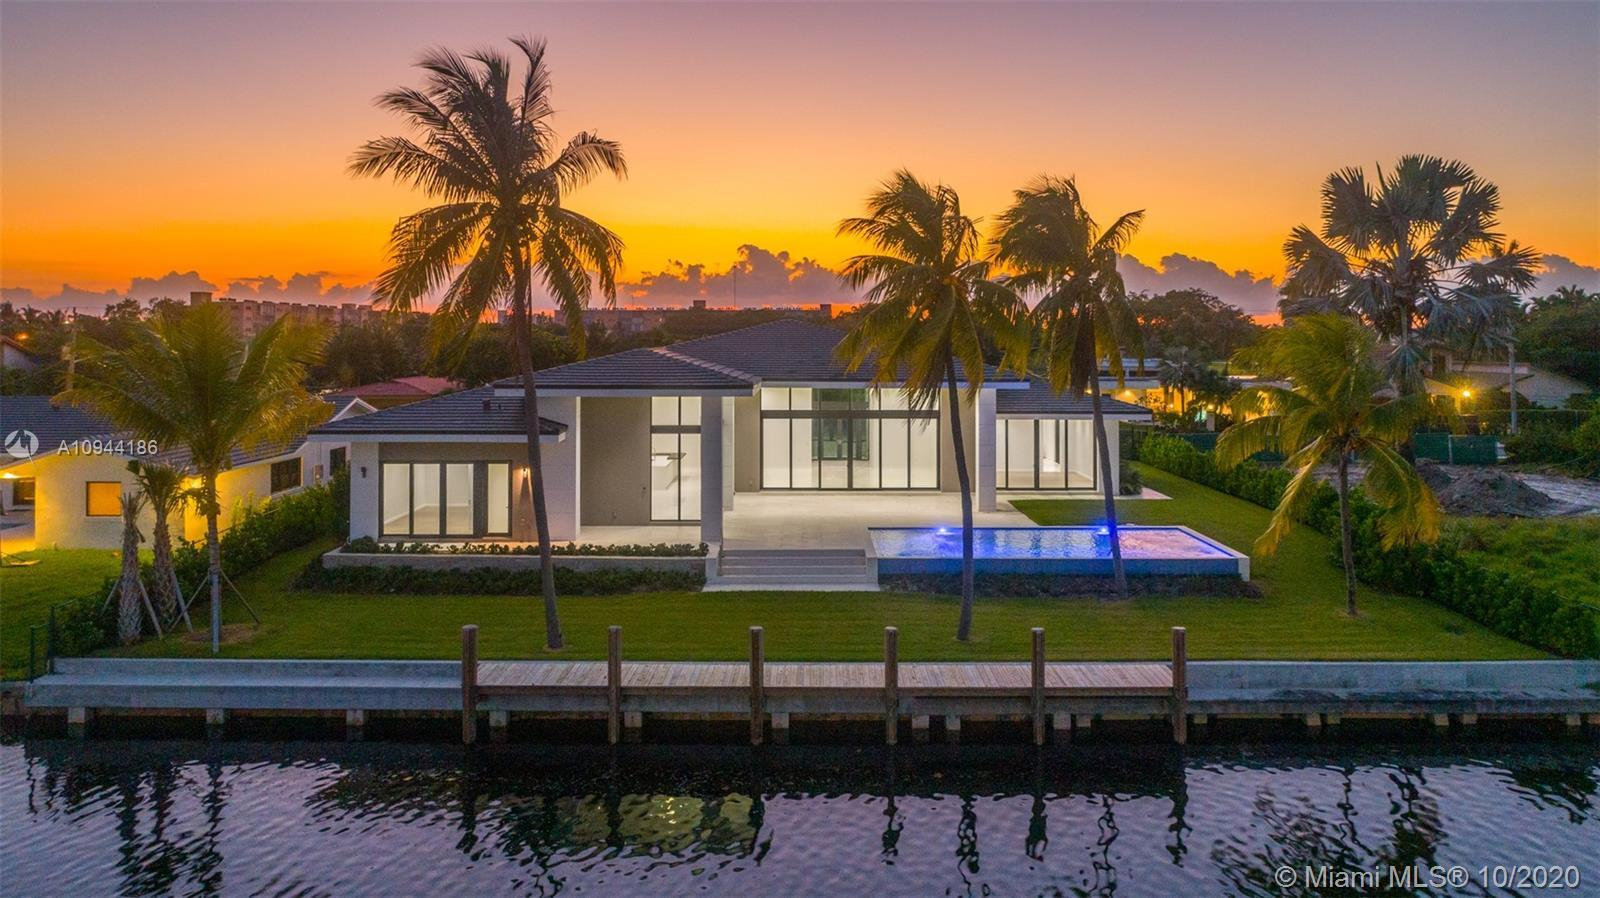 This BRAND NEW single story modern ranch-style home offers the perfect balance of both waterfront an